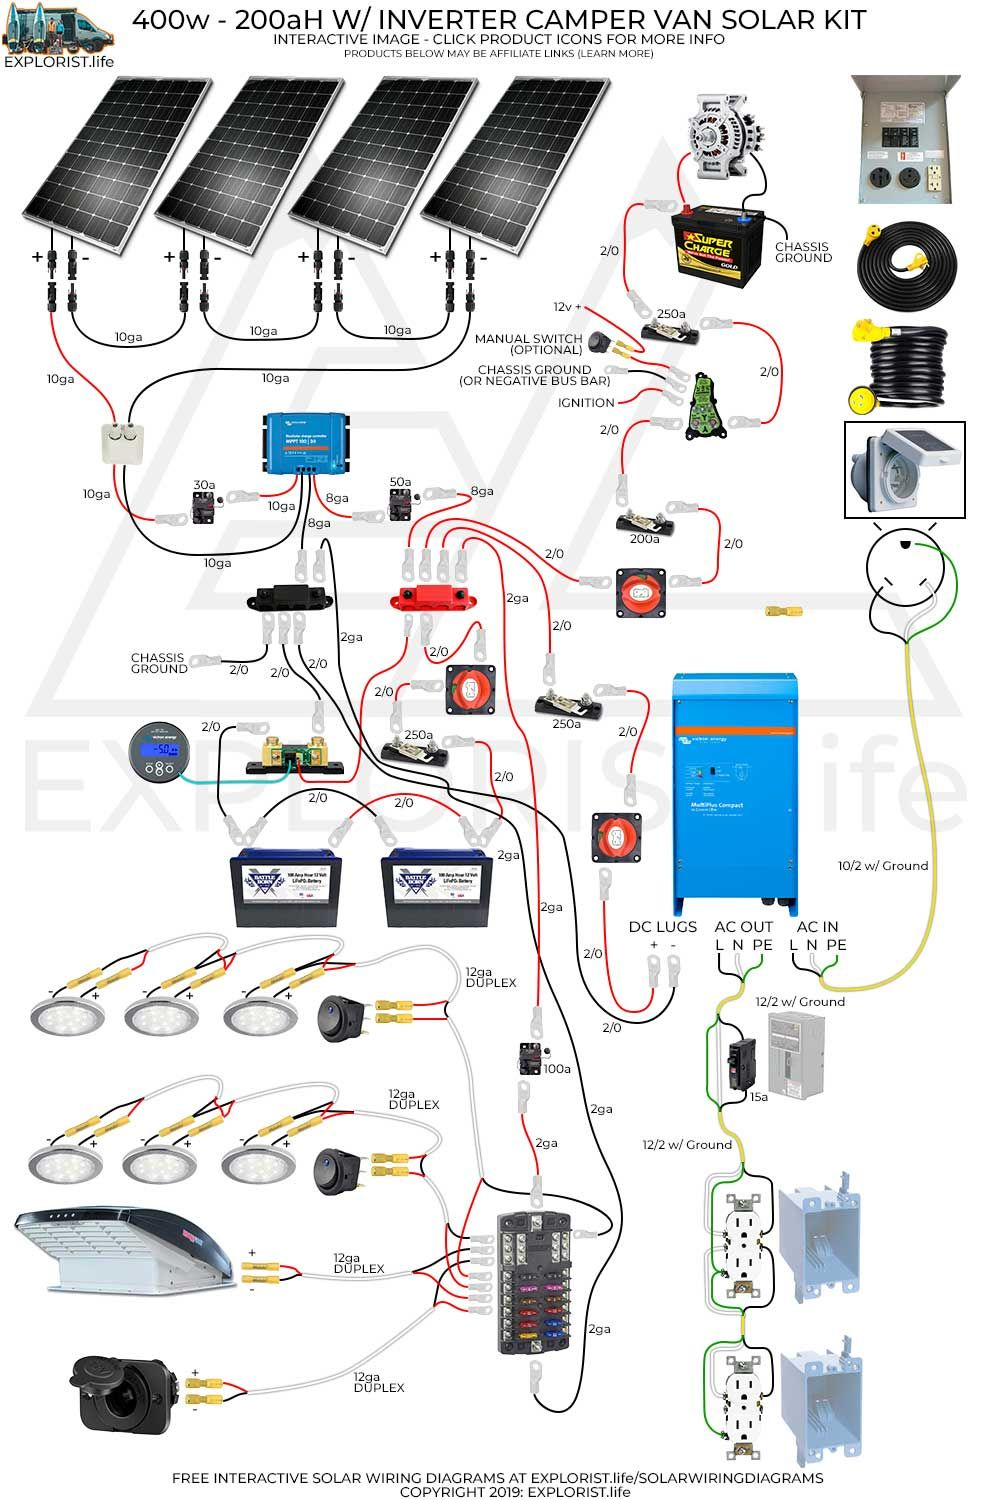 medium resolution of interactive diy solar wiring diagrams for campers van s rv s 1000 images about camping r v wiring outdoors on pinterest